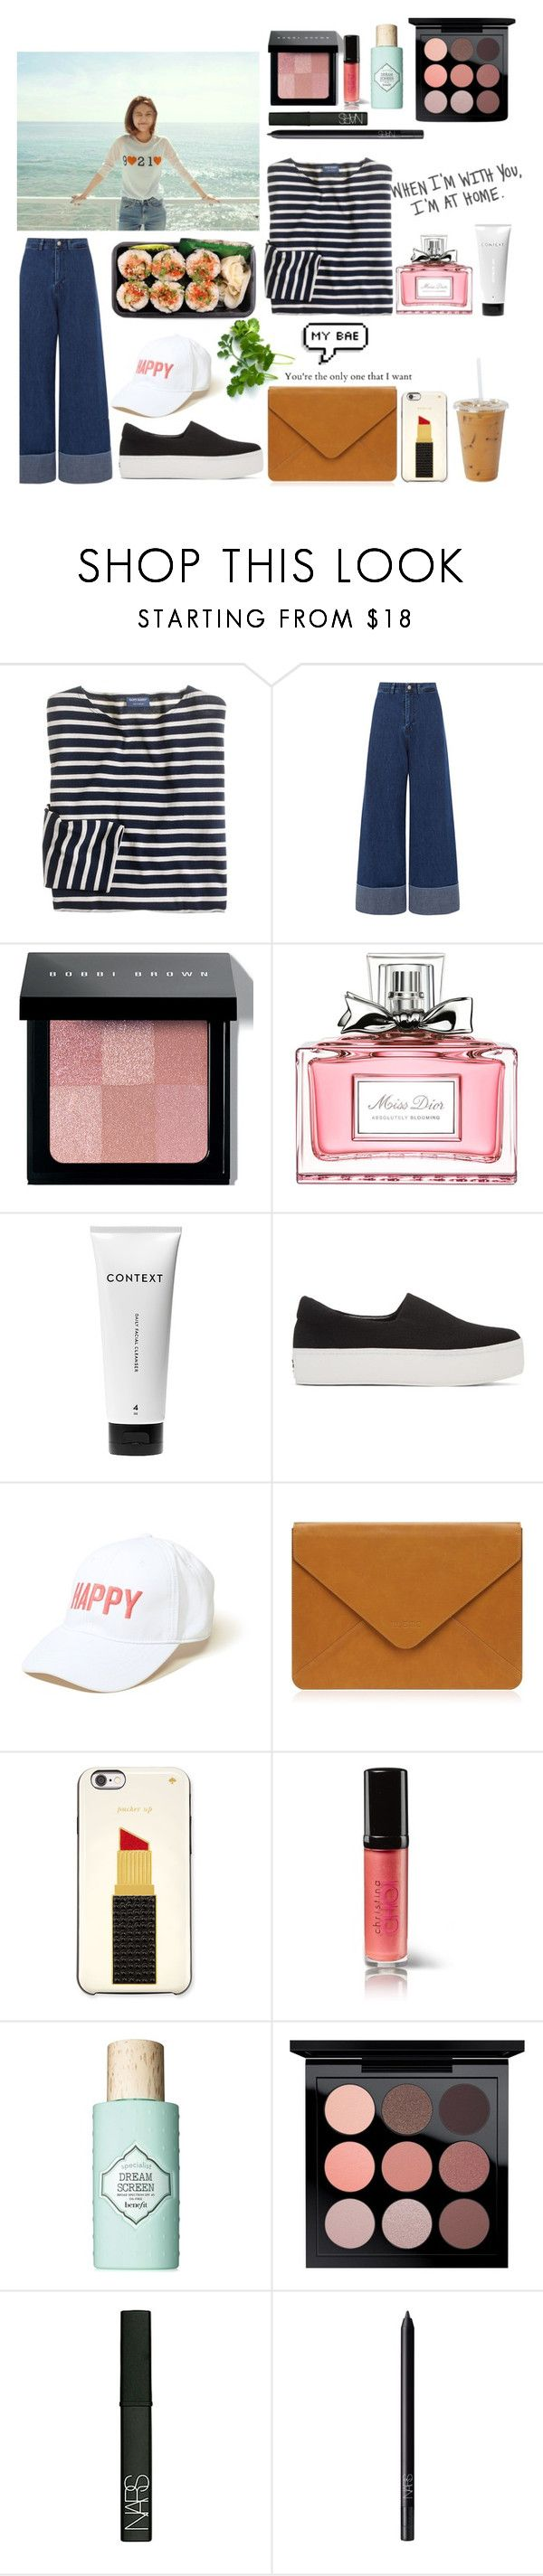 """Soo🐶"" by soojinchoi ❤ liked on Polyvore featuring J.Crew, Sea, New York, Bobbi Brown Cosmetics, Christian Dior, Context, Opening Ceremony, Hollister Co., Kate Spade, Christina Choi Cosmetics and Benefit"